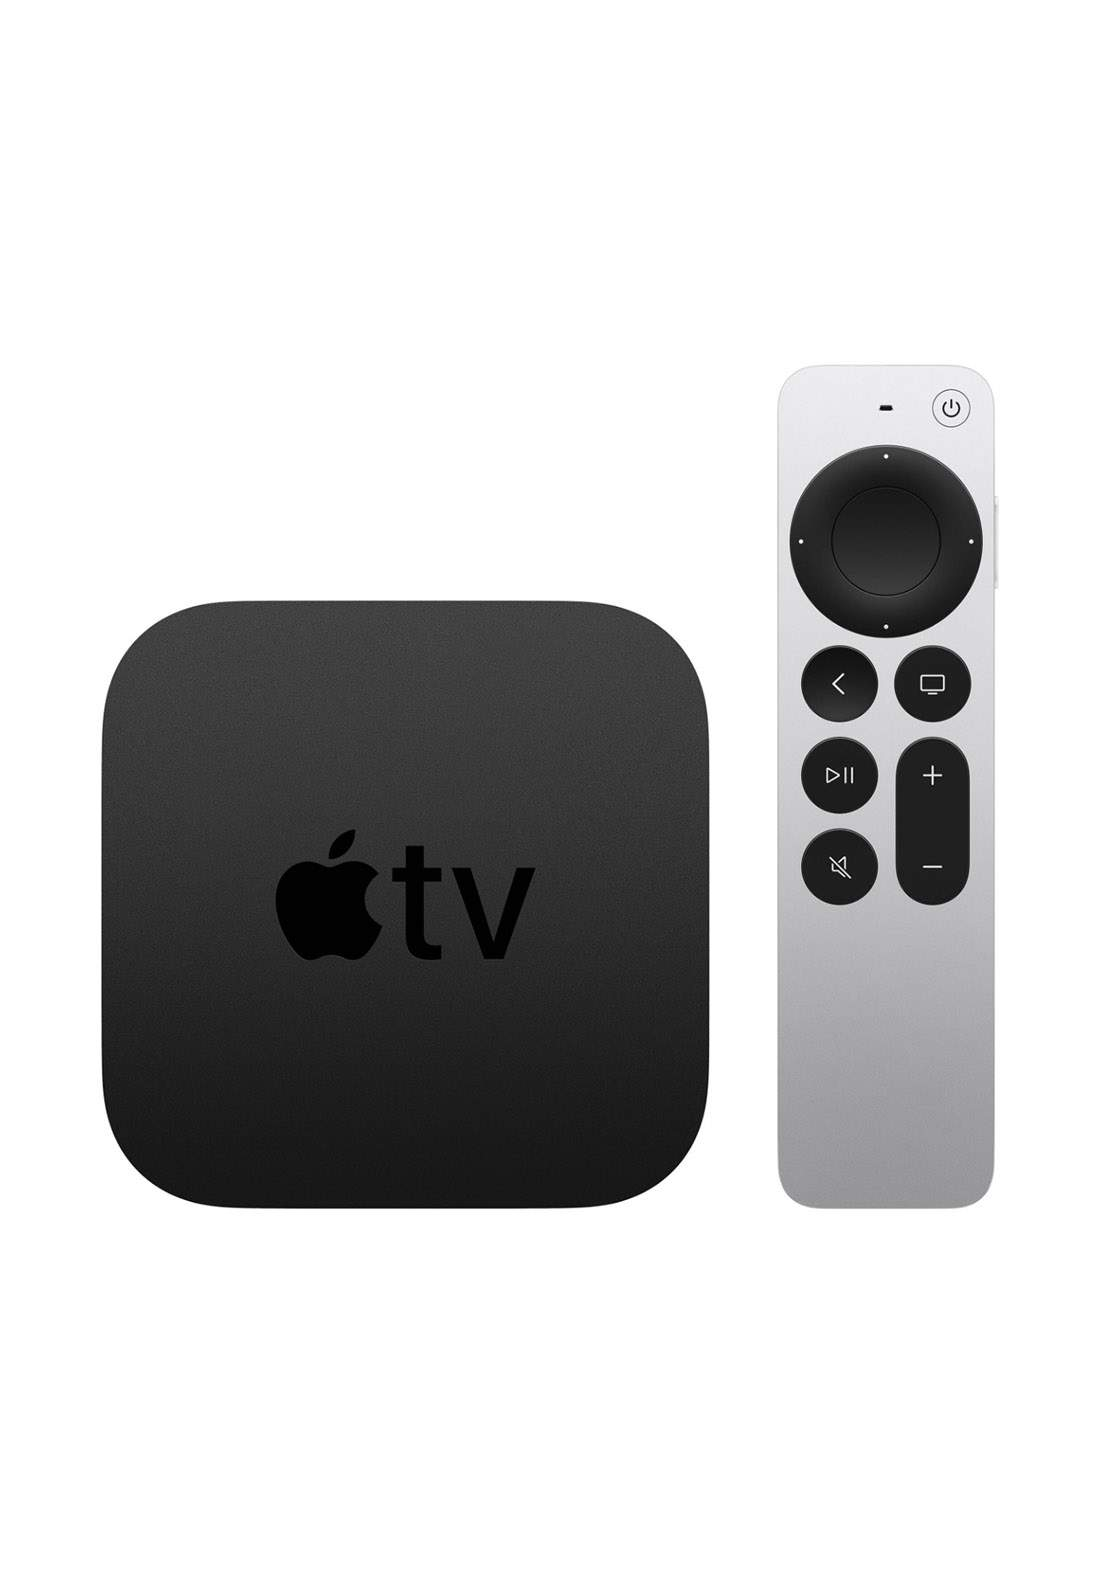 Apple MXGY2AE/A TV 4K and Control 32GB - Black